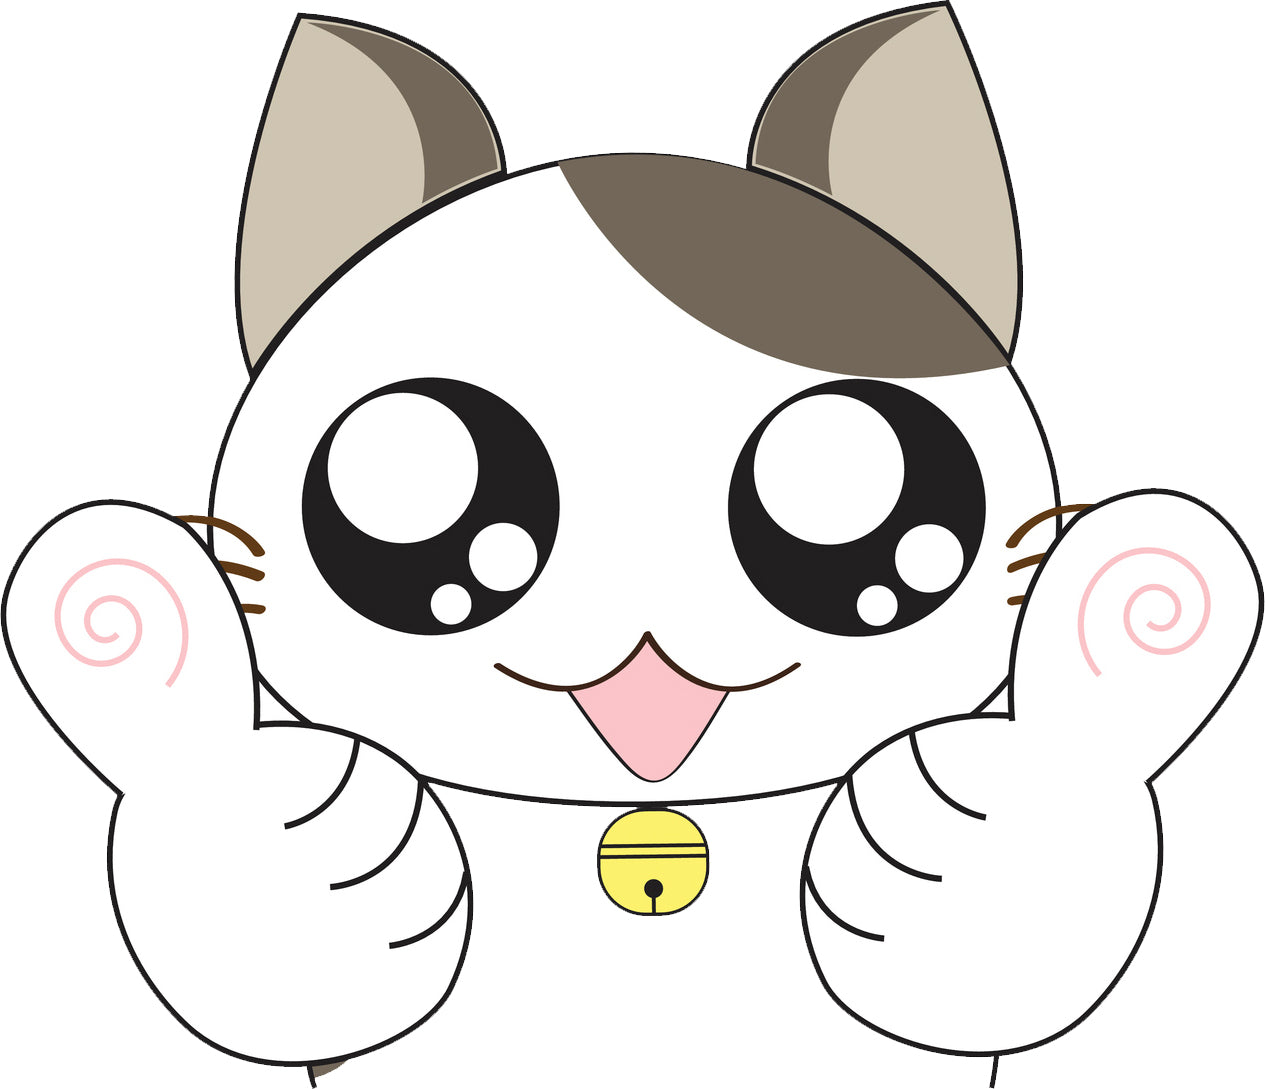 Cute Asian Anime Kitty Cat - Thumbs Up Vinyl Decal Sticker